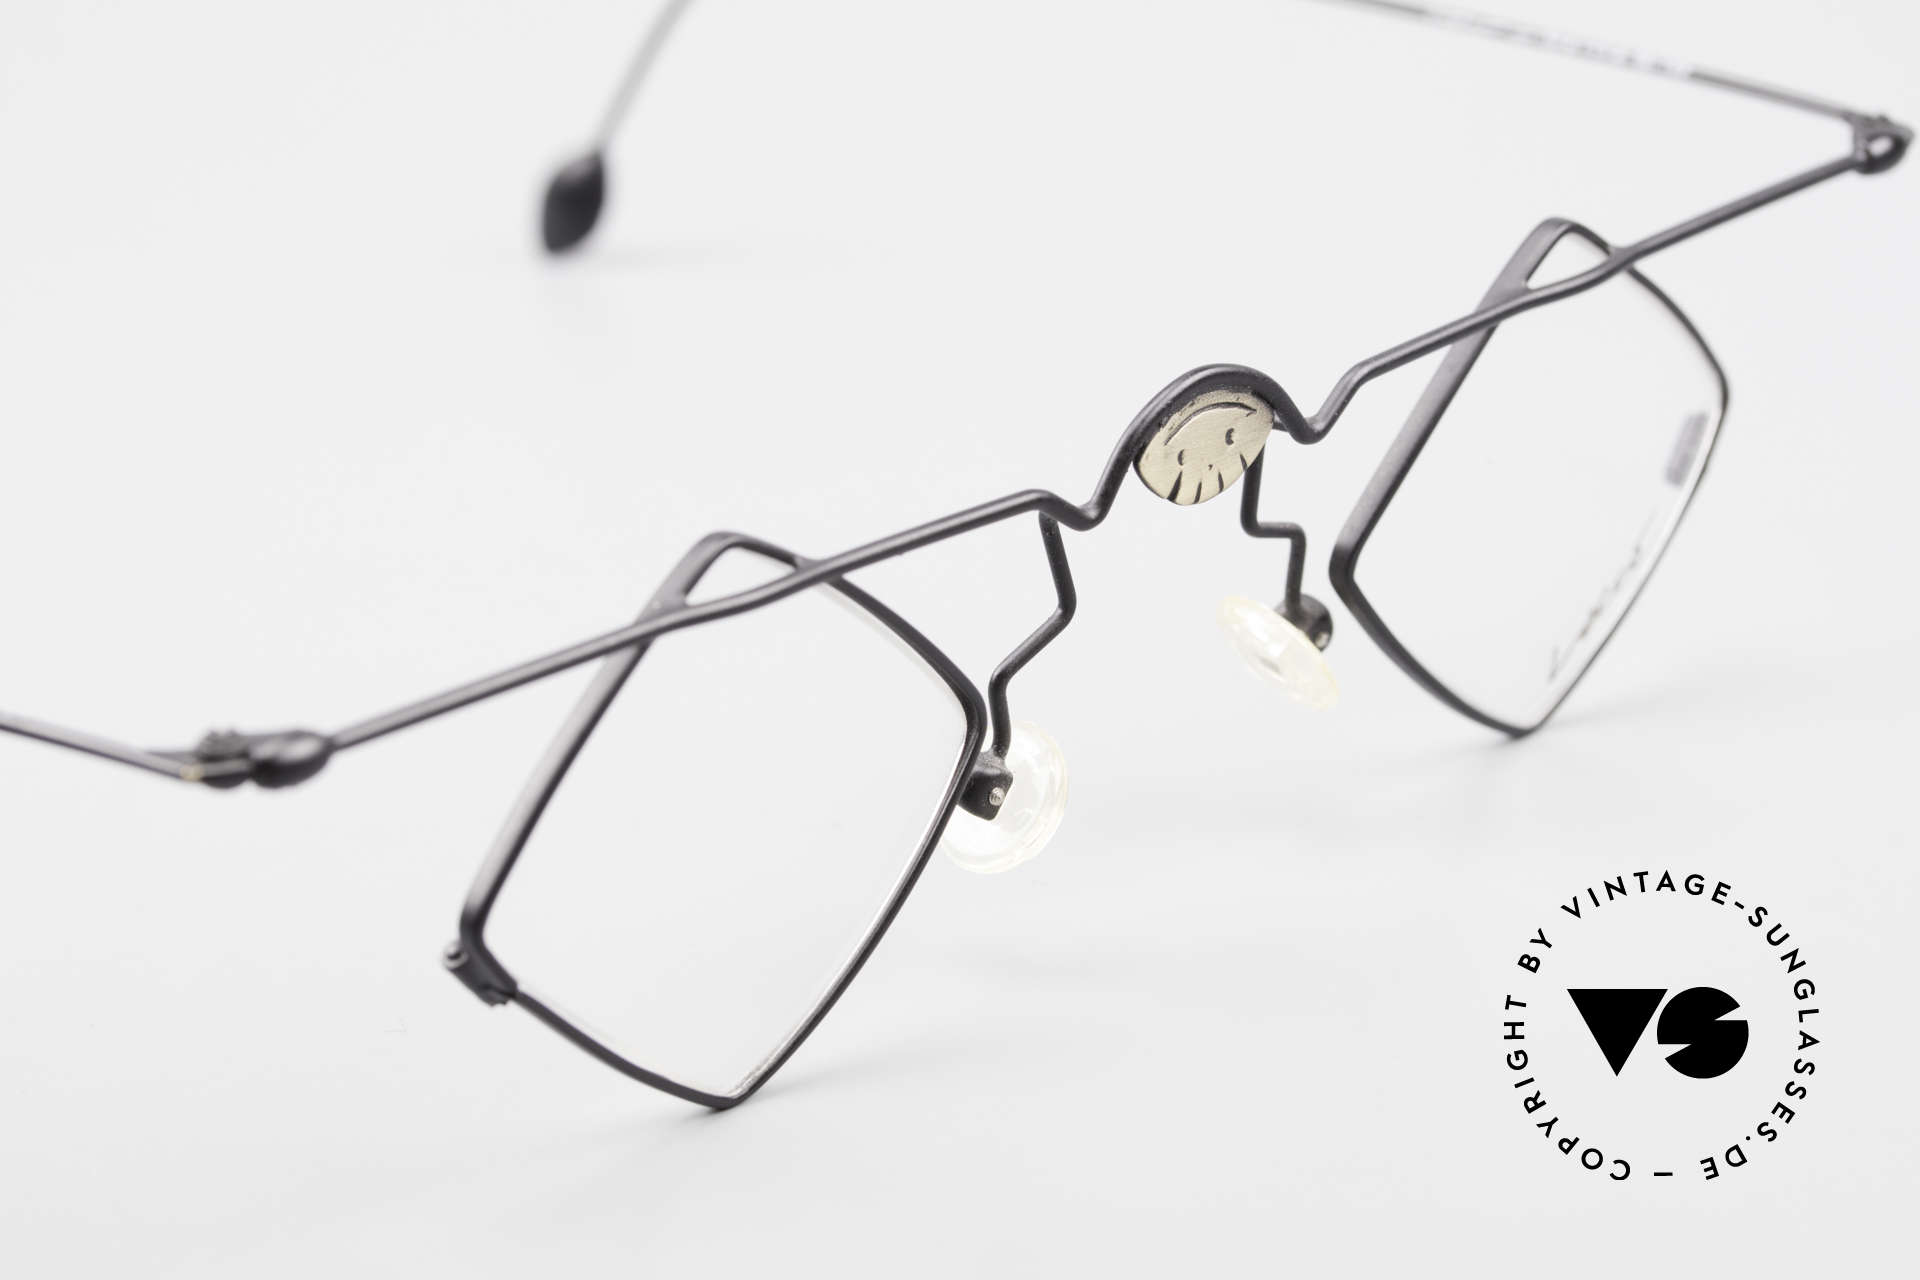 Locco 08 Good Mood Vintage Eyeglasses, demo lenses should be replaced with prescriptions, Made for Men and Women